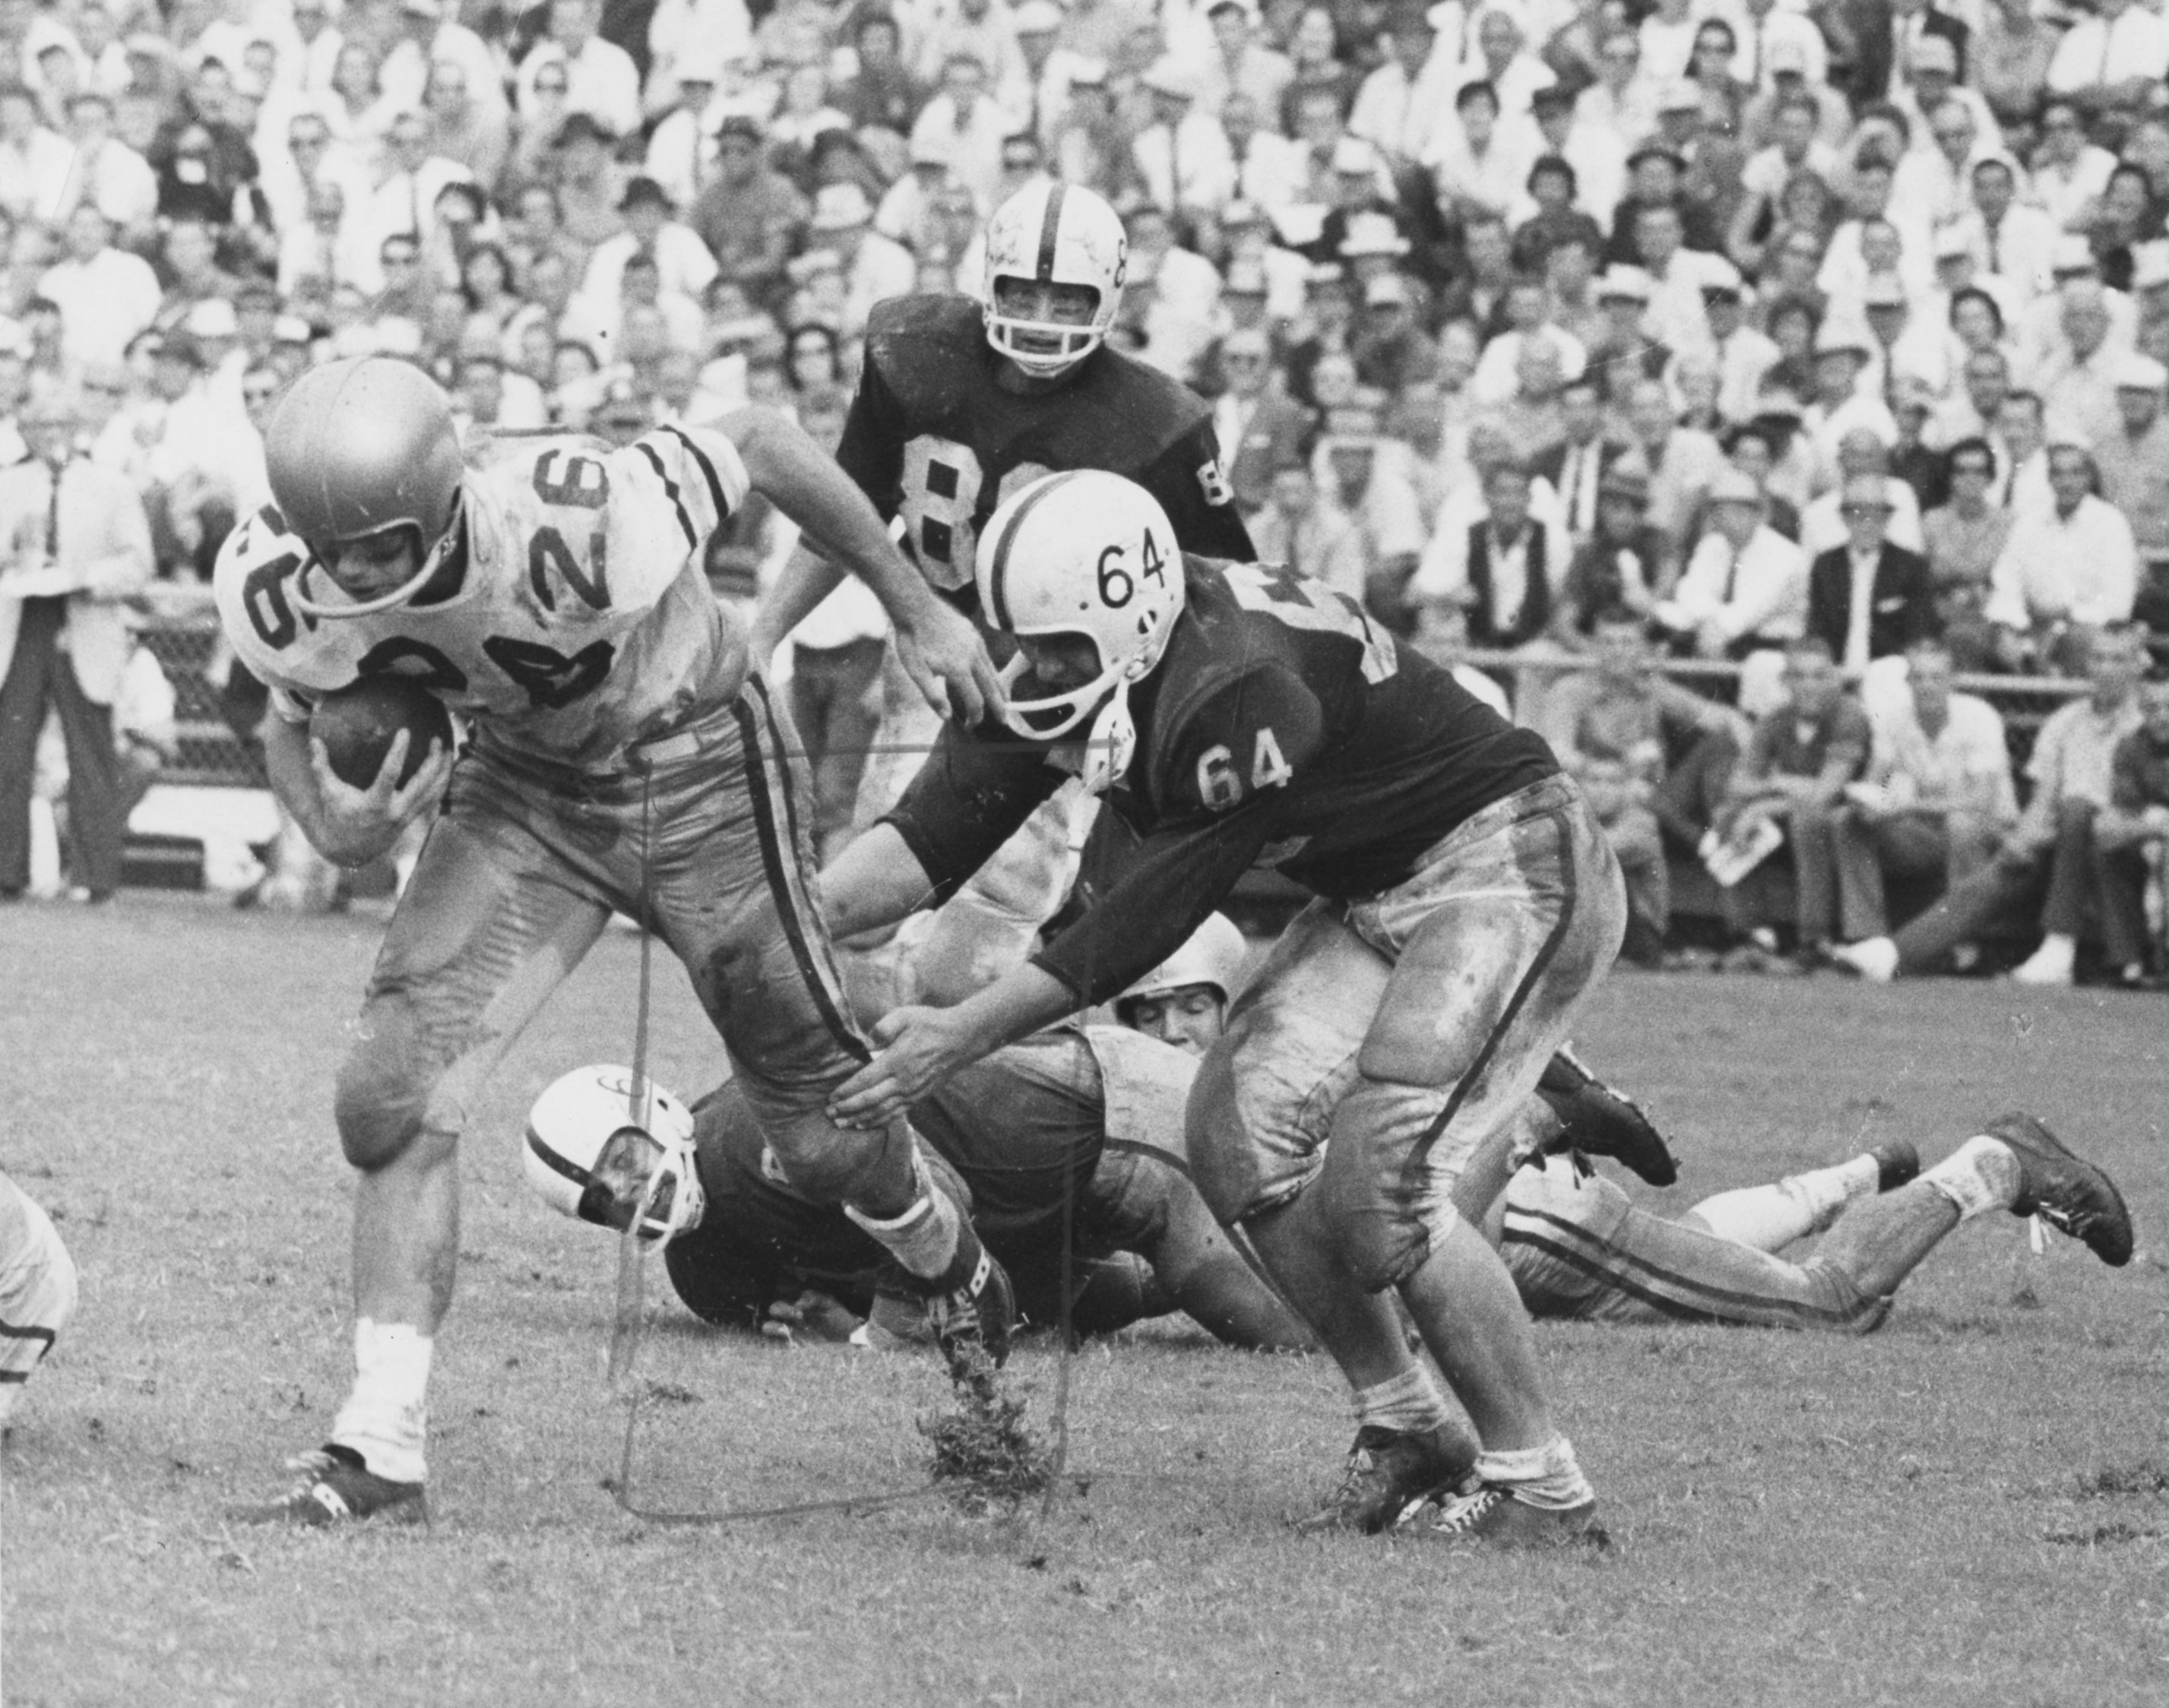 Unidentified Football Players During Game Against Unidentified Opponent Photographer Bill